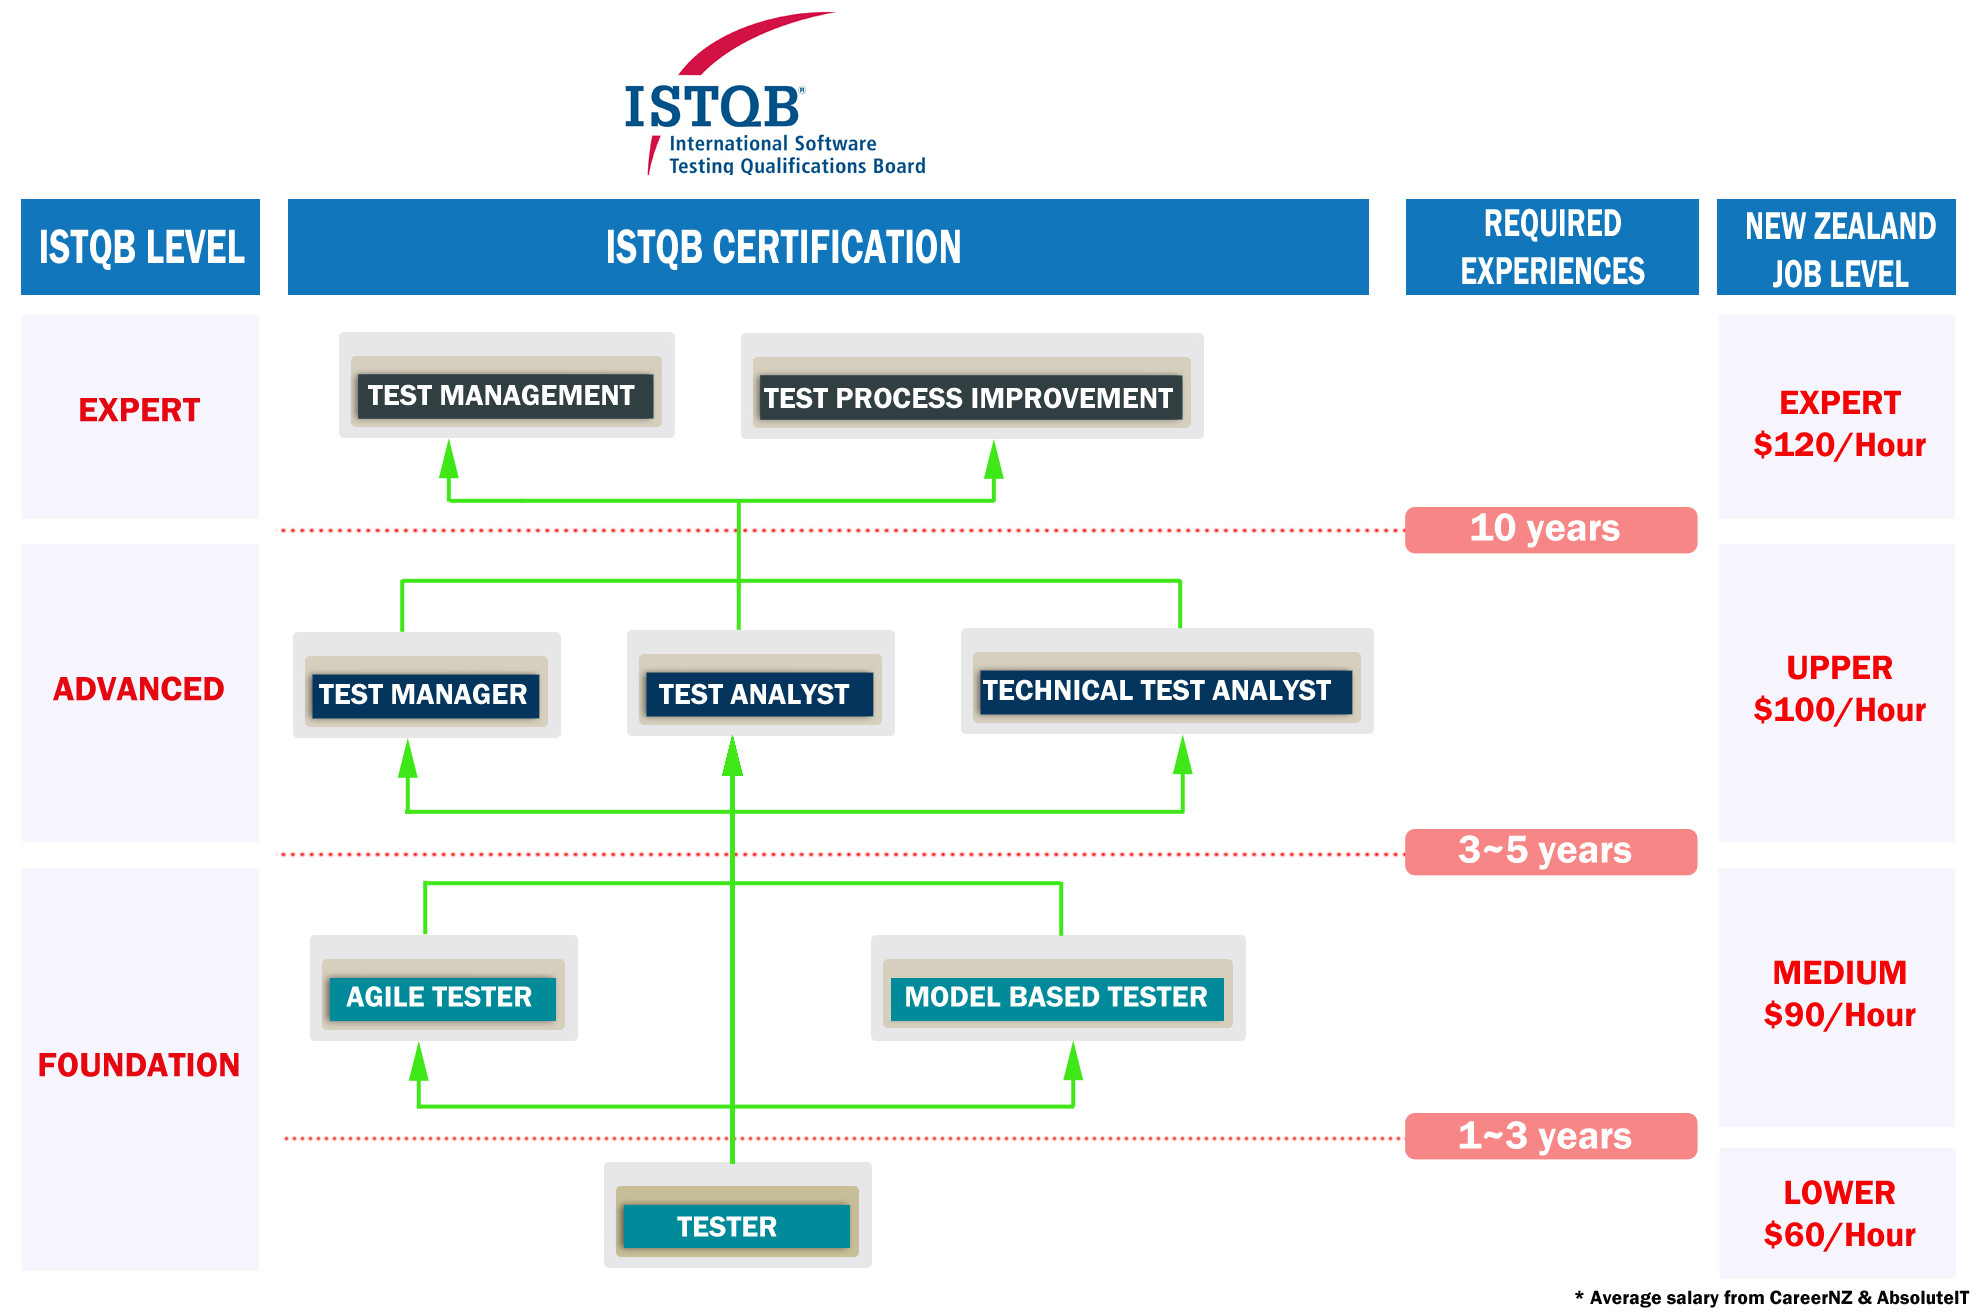 Istqb certification overview aiit istqb certification overview 1betcityfo Image collections